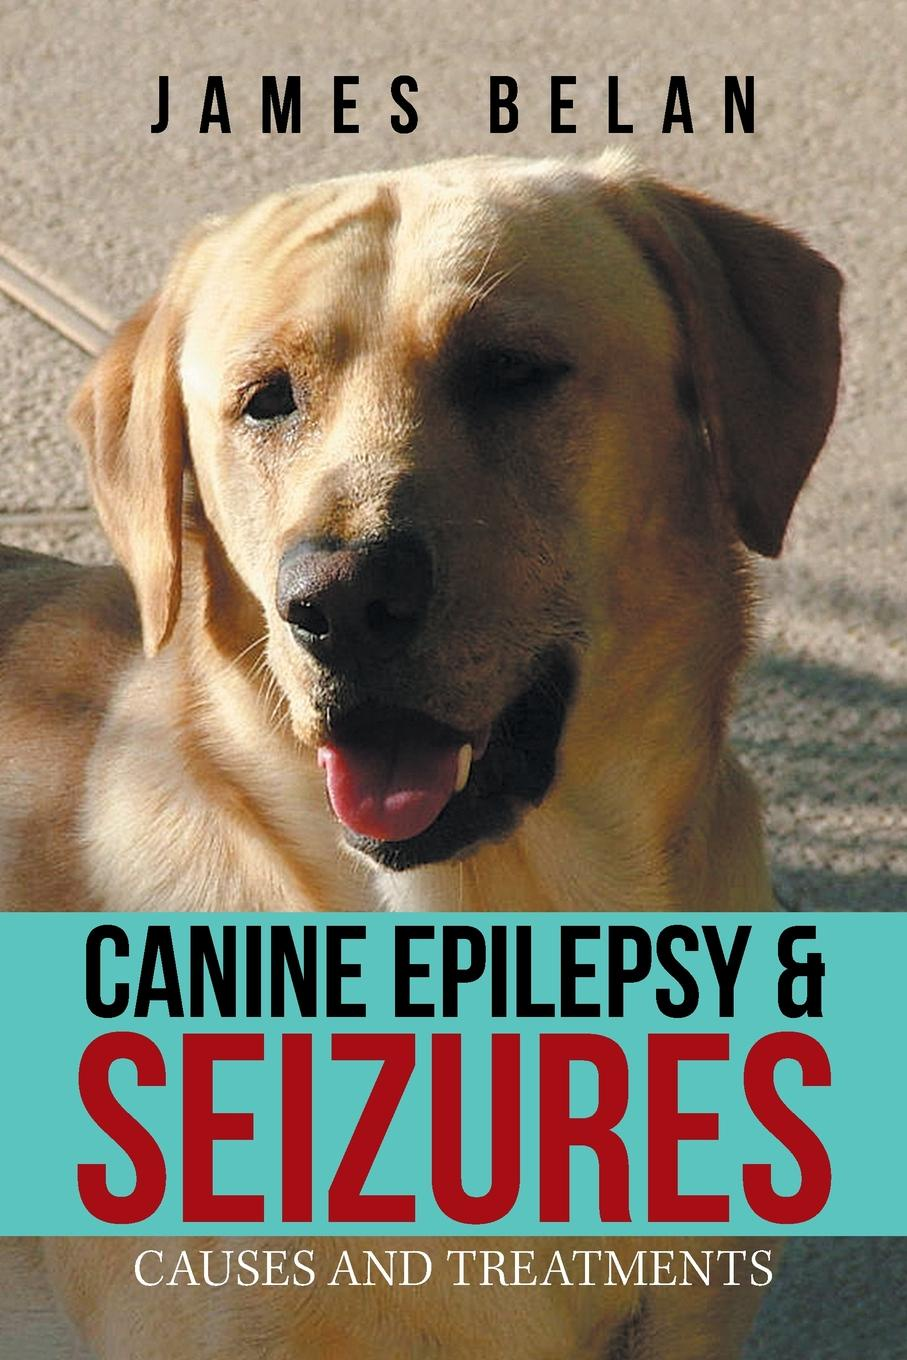 James Belan Canine Epilepsy . Seizures. Causes and Treatments